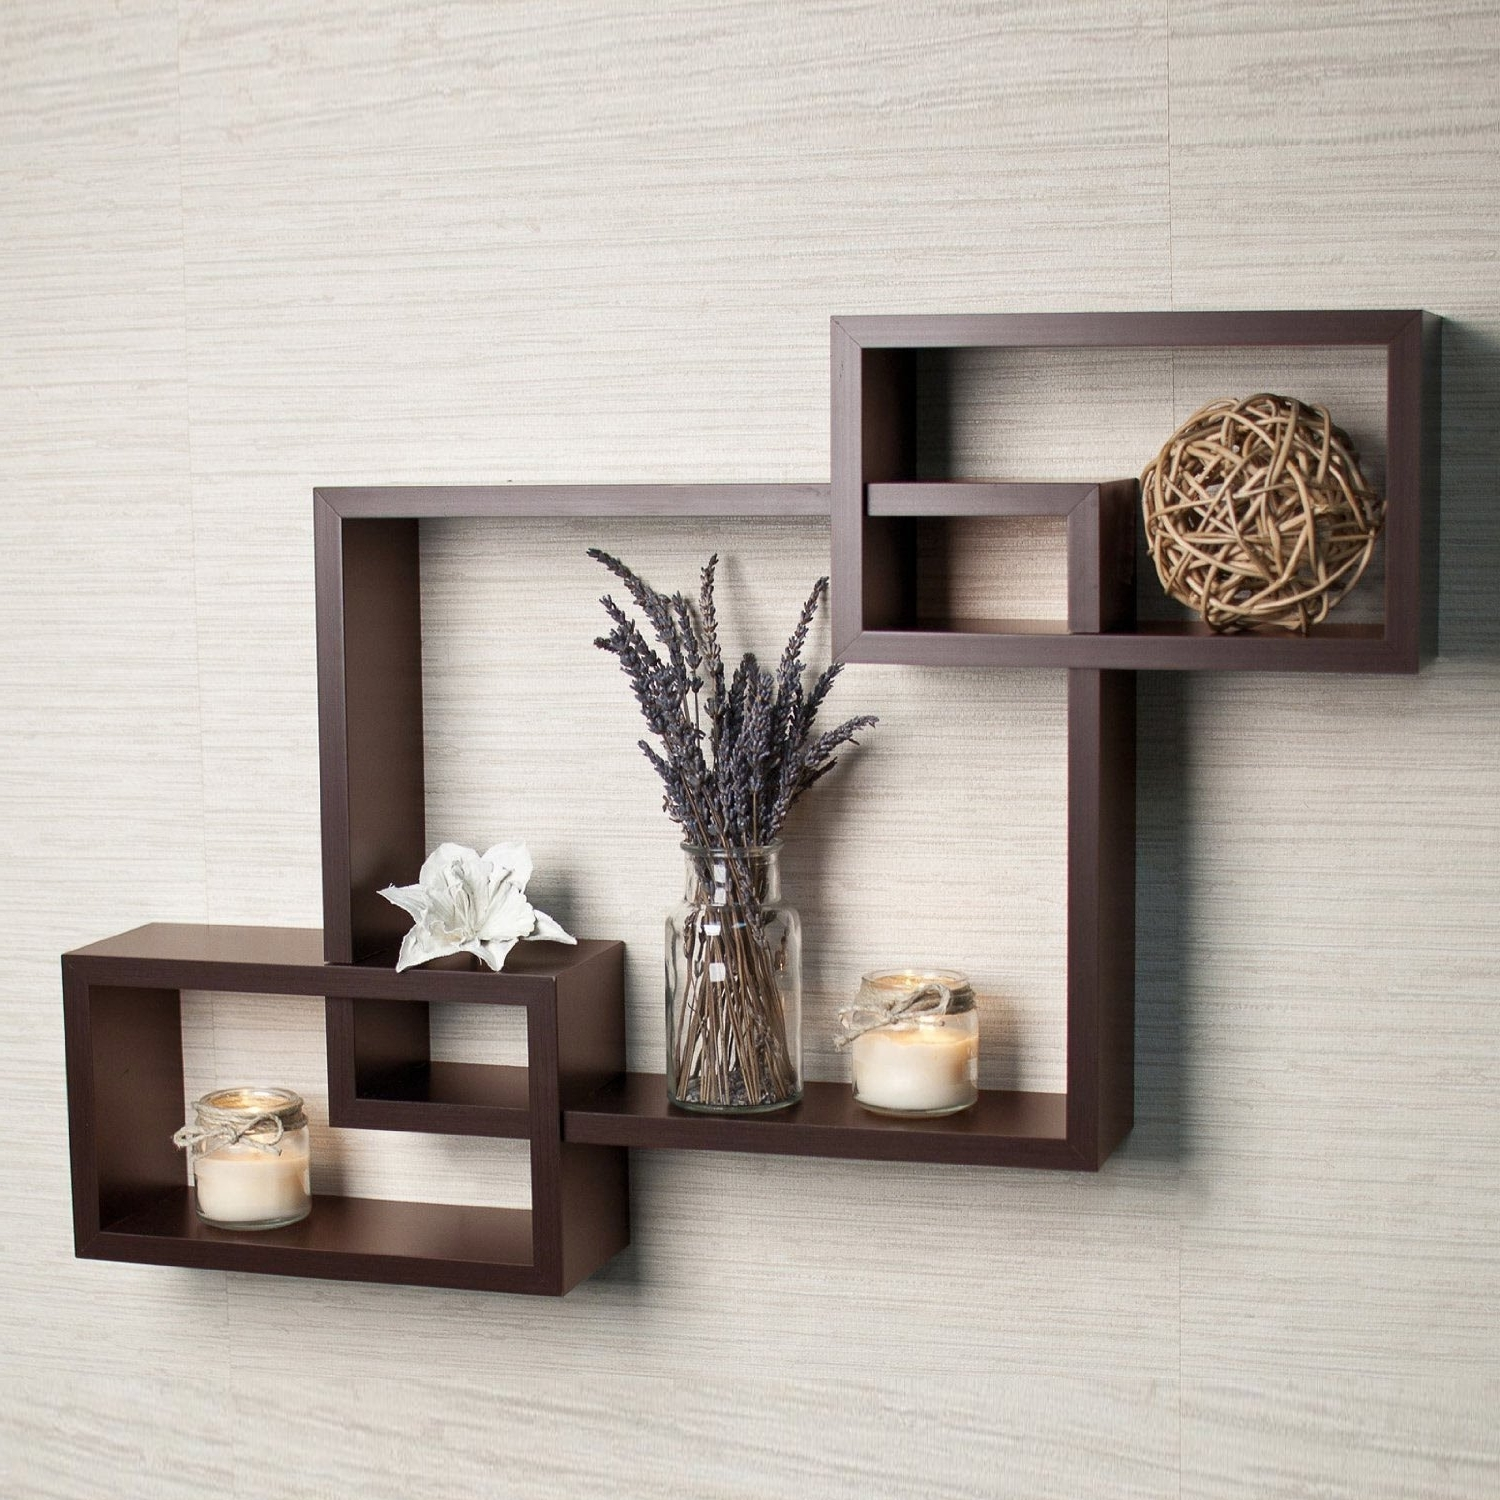 Wooden Wall Shelves Throughout Newest Driftingwood Wall Shelf Rack Set Of 3 Intersecting Wall Shelves (View 2 of 15)